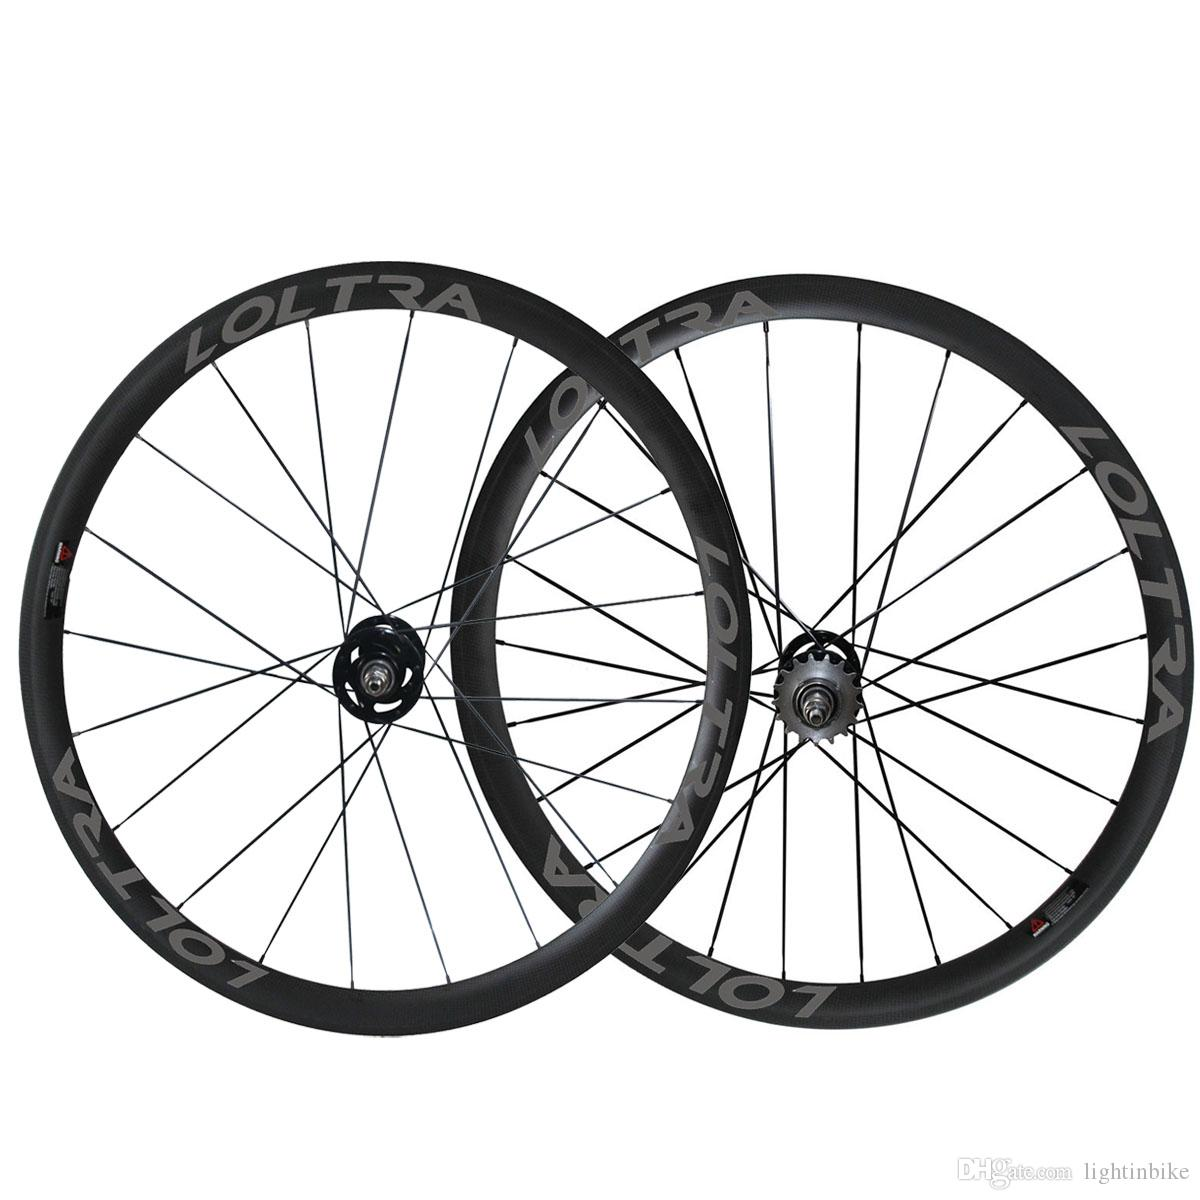 White Decal 38mm Tubular Fix Gear Wheelset carbon track bike Front Rear wheels fixed gear flip flop single speed bicycle wheelset